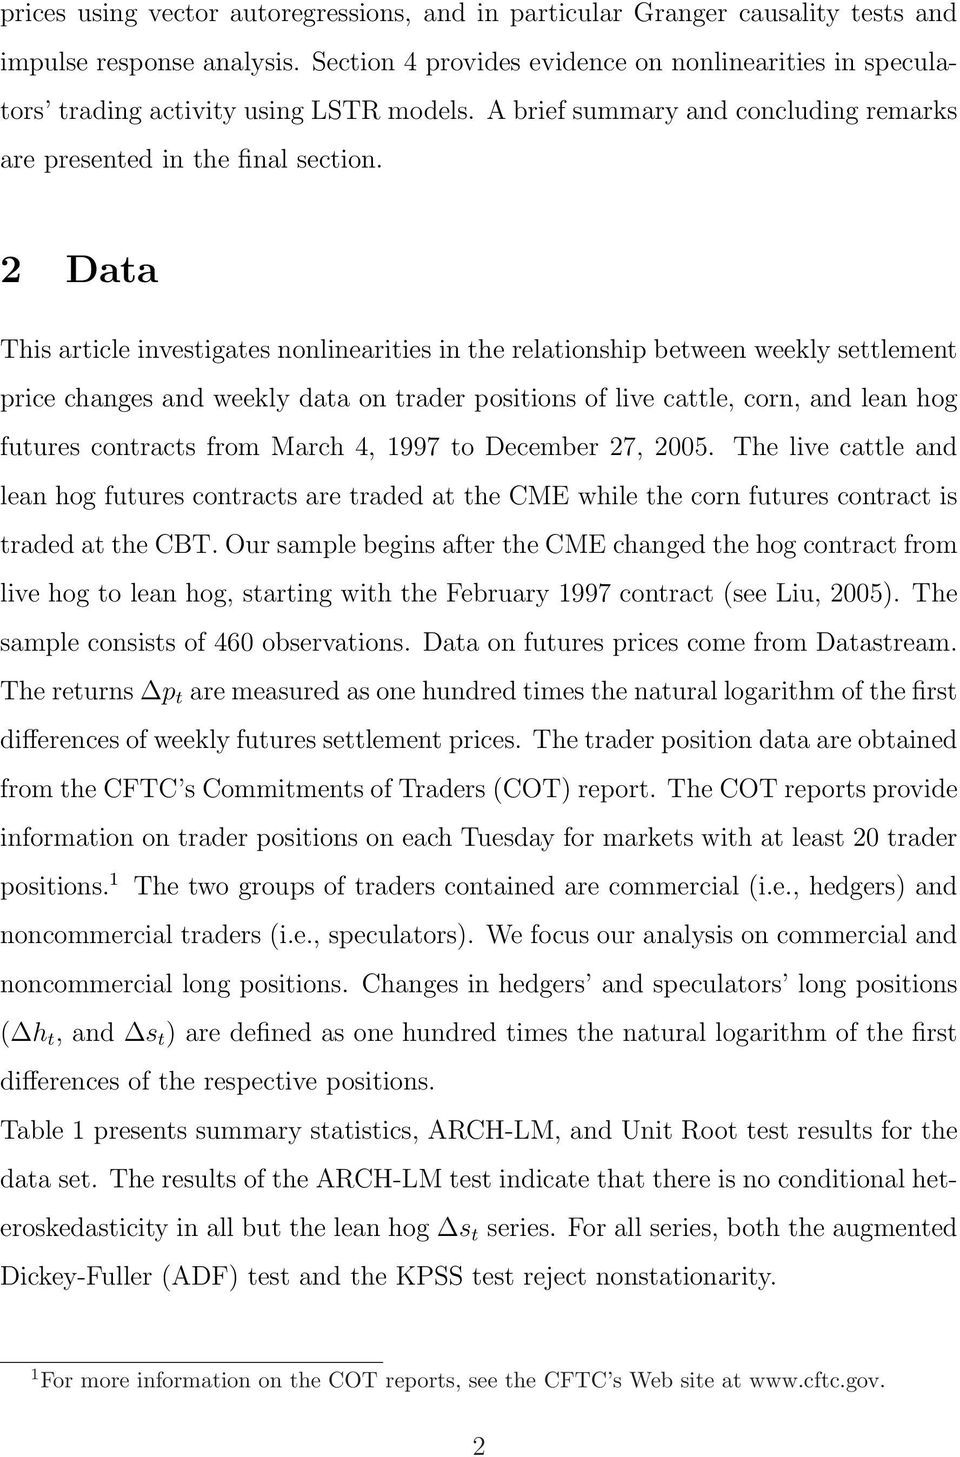 2 Data This article investigates nonlinearities in the relationship between weekly settlement price changes and weekly data on trader positions of live cattle, corn, and lean hog futures contracts